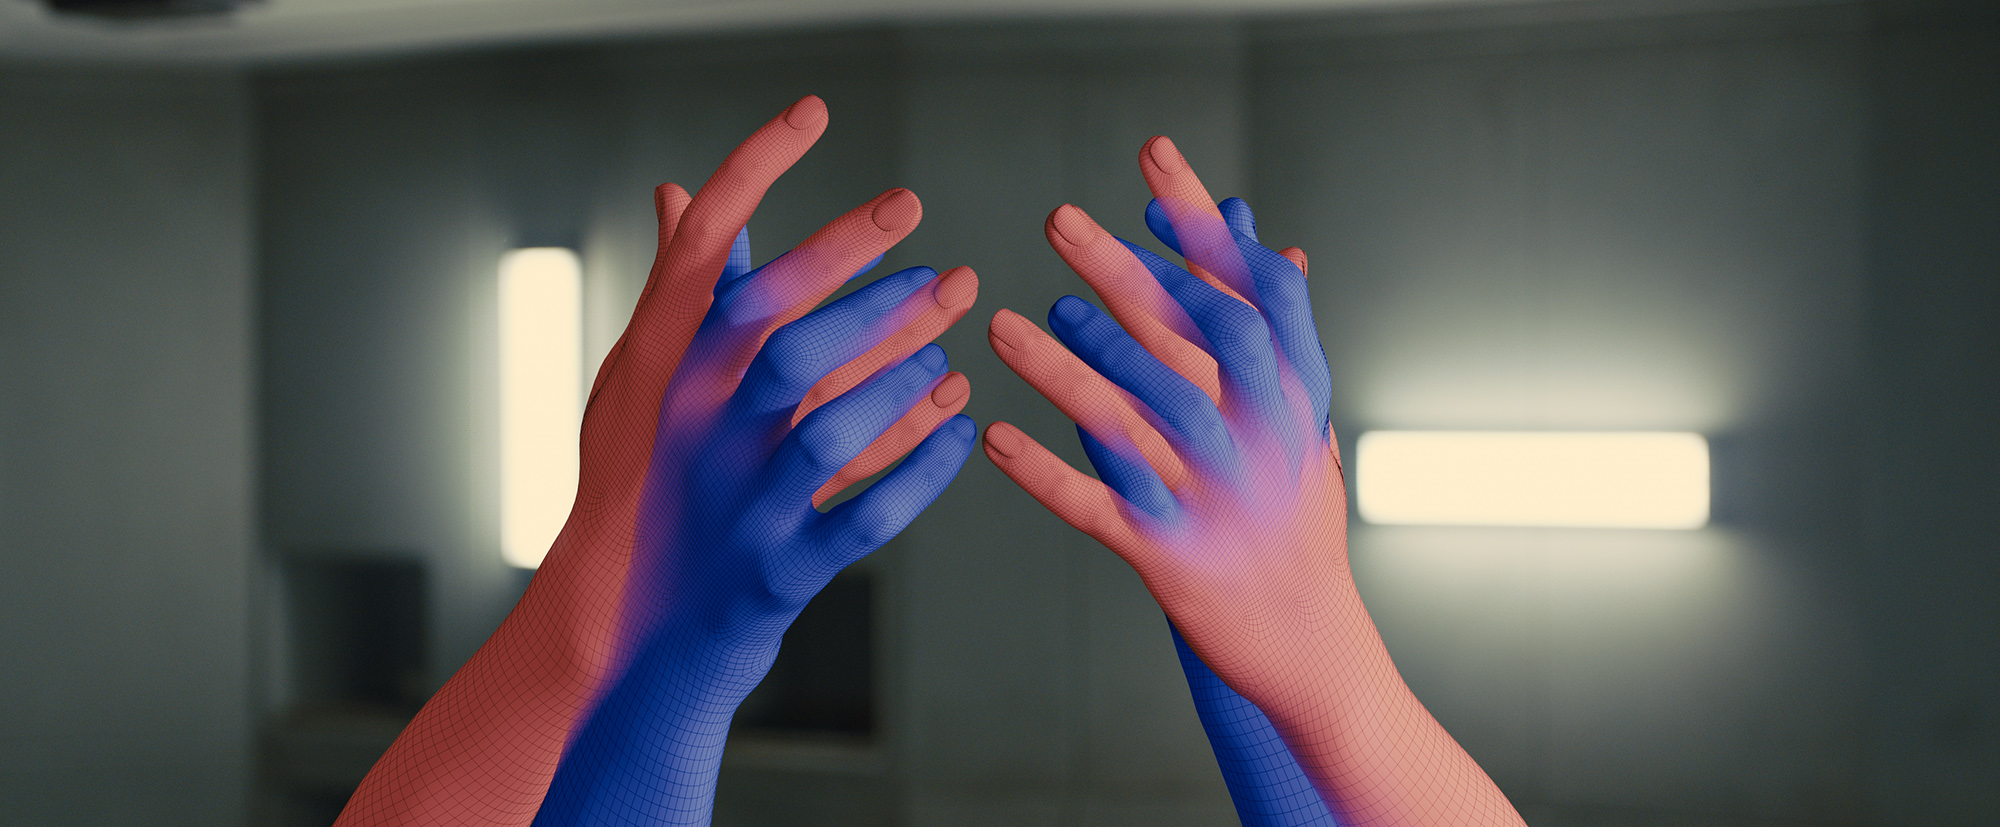 A CG version of both actresses hands during the sex scene in Blade Runner 2049 (©2017 ALCON ENTERTAINMENT, LLC., WARNER BROS. ENTERTAINMENT INC. AND COLUMBIA TRISTAR MARKETING GROUP, INC. ALL RIGHTS RESERVED.)